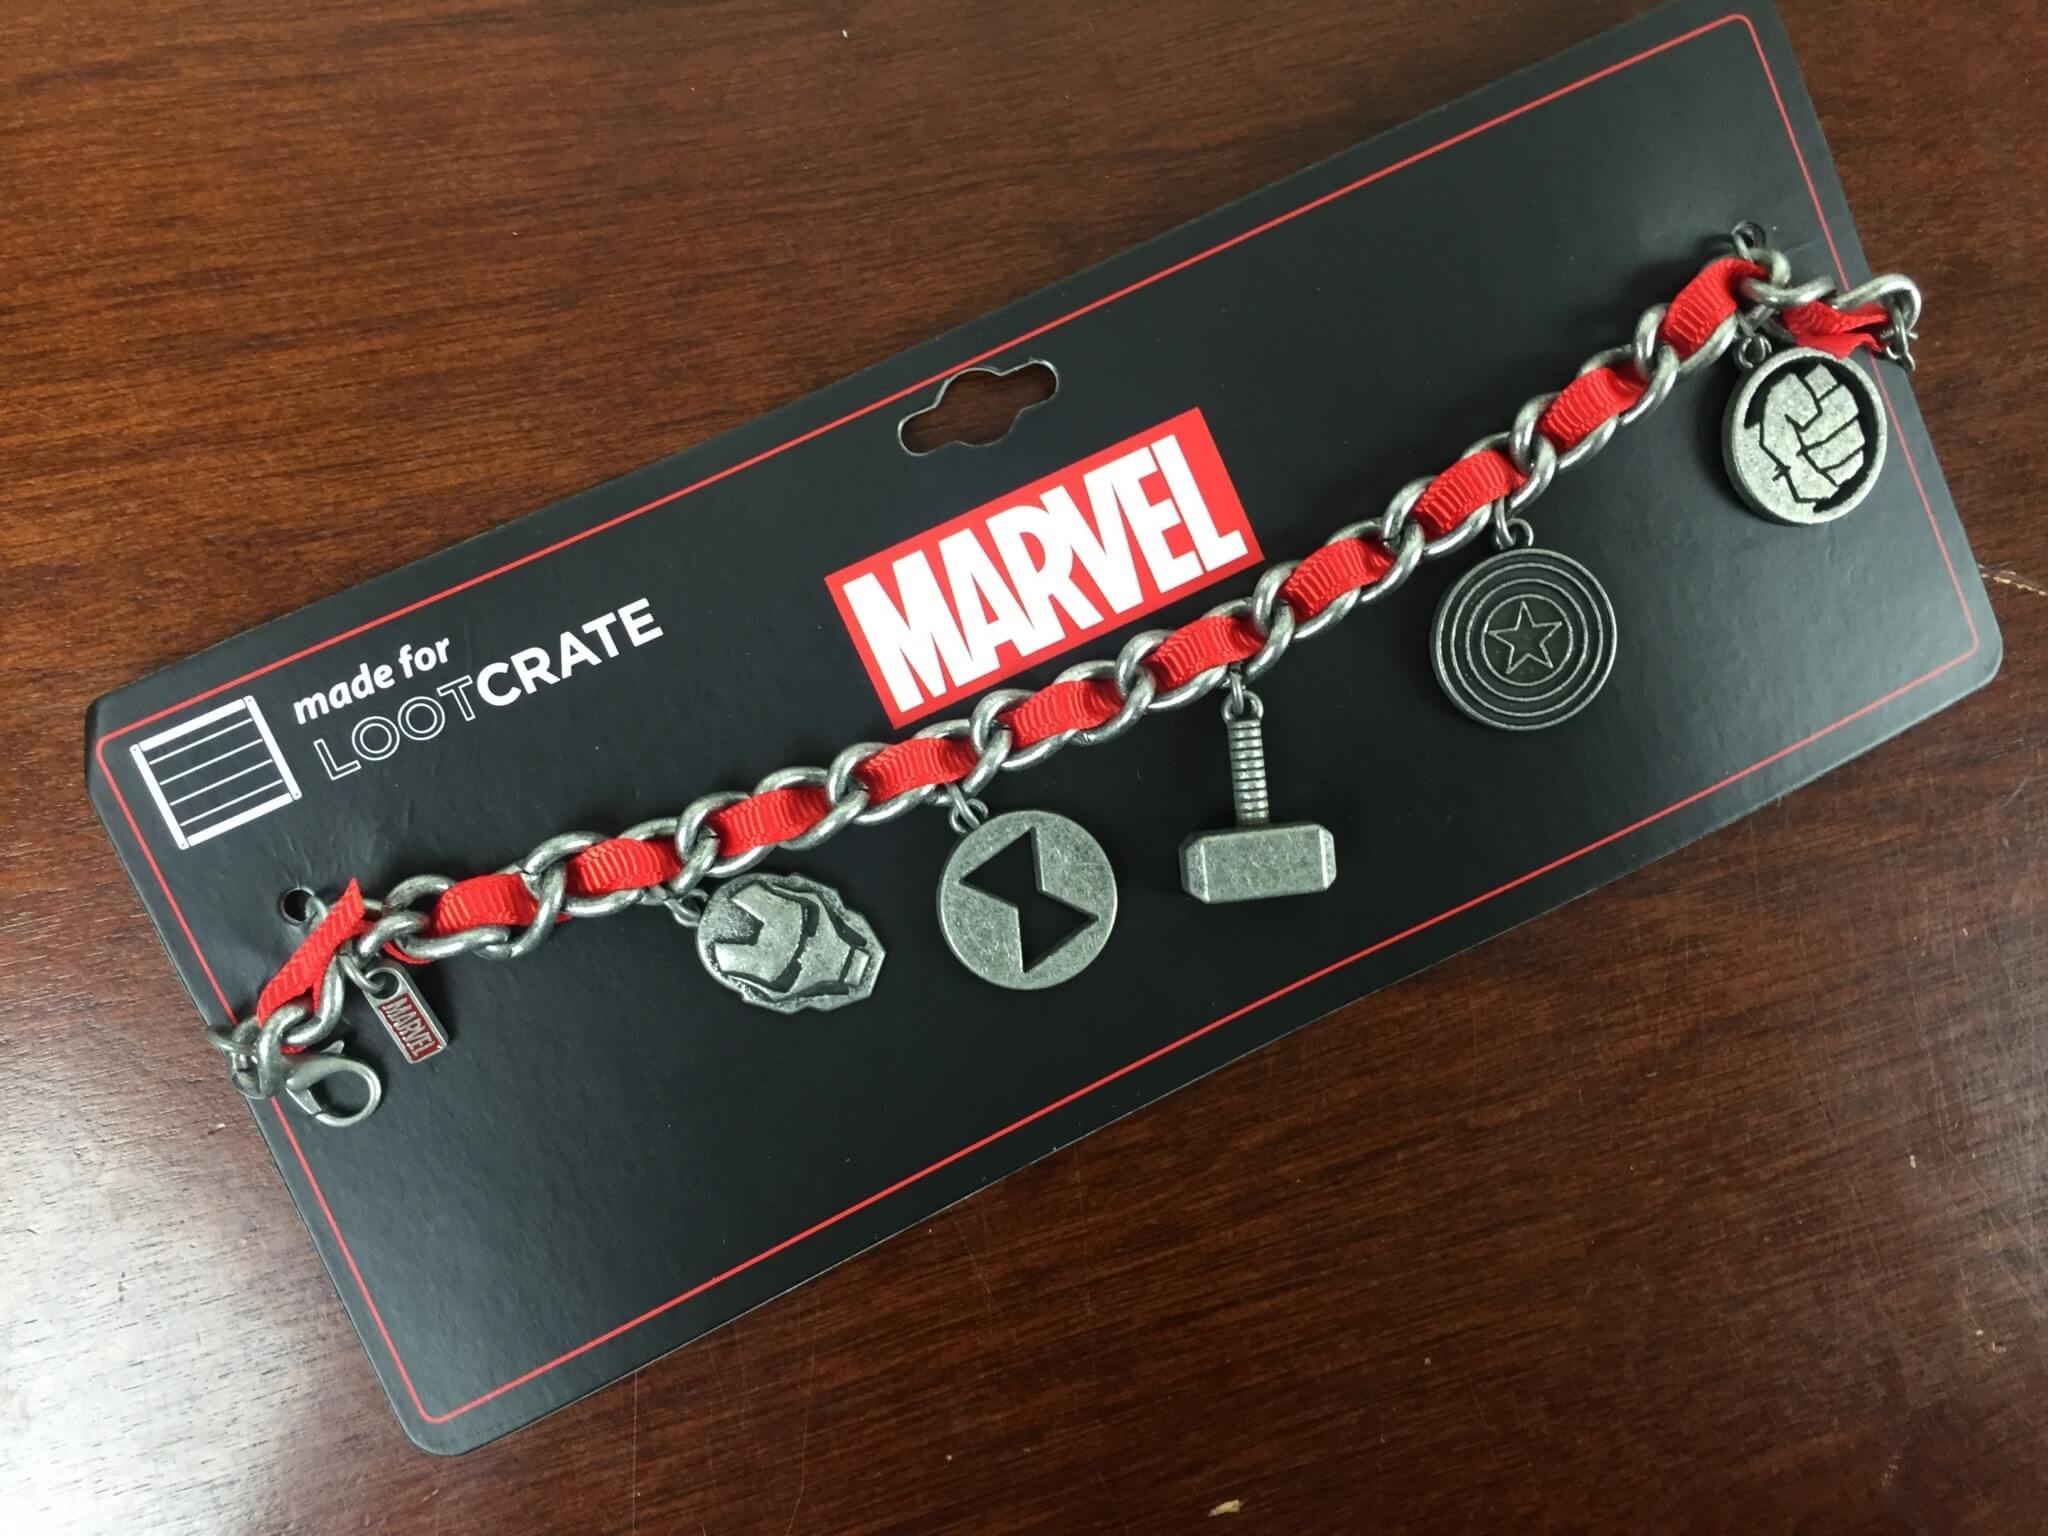 level up loot crate may 2016 marvel bracelet